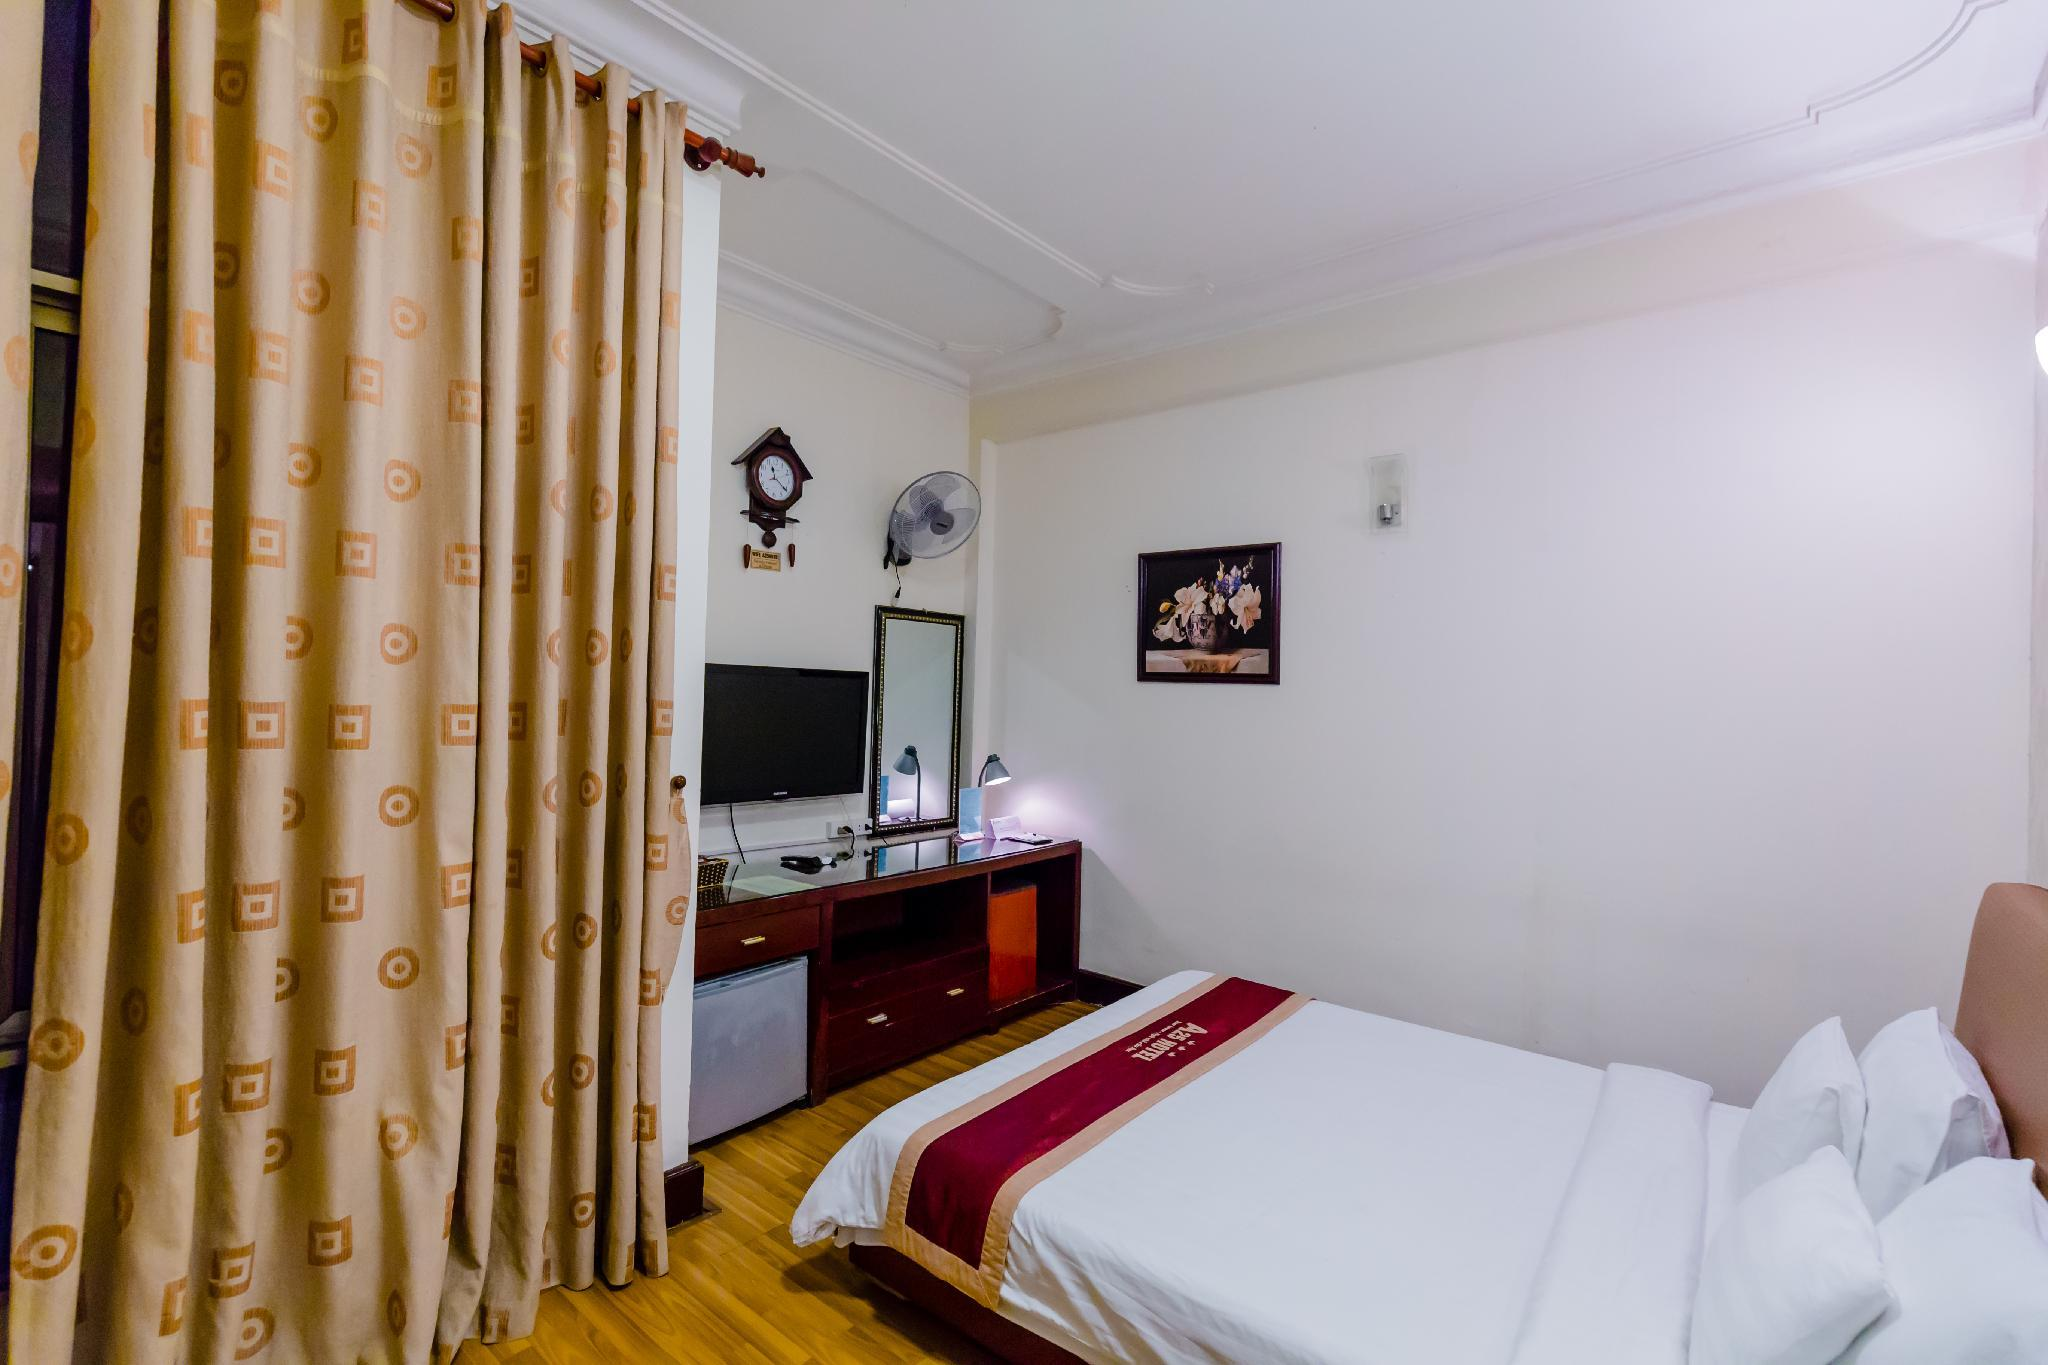 A25 Hotel   Giang Vo